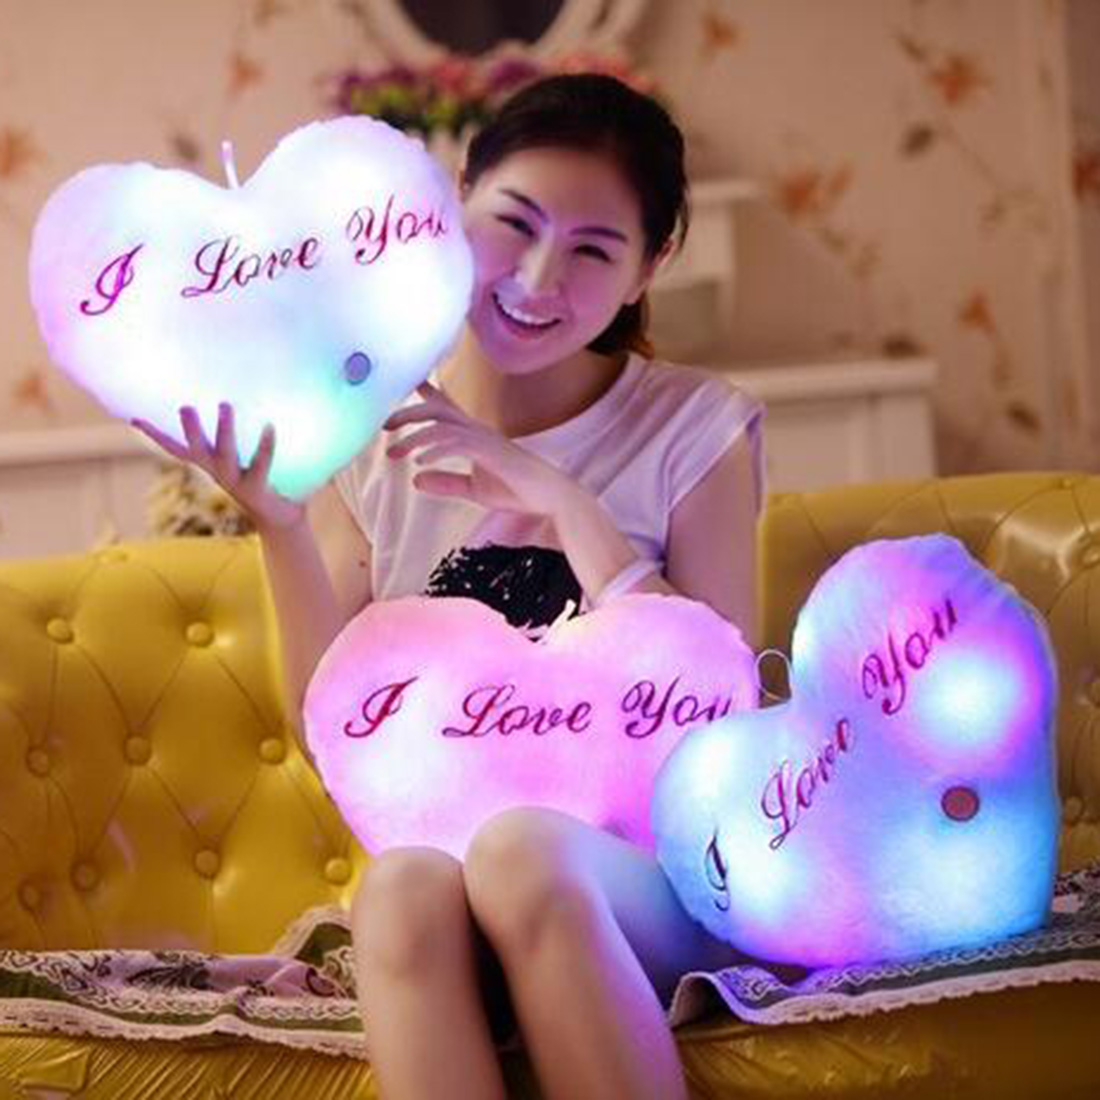 Punctual Led Luminous Heart Shape Pillow Cushion For Christmas Party Decor Heart Glow Led Pillow Light Soft Cushion Gift Home Plush Child Cushion